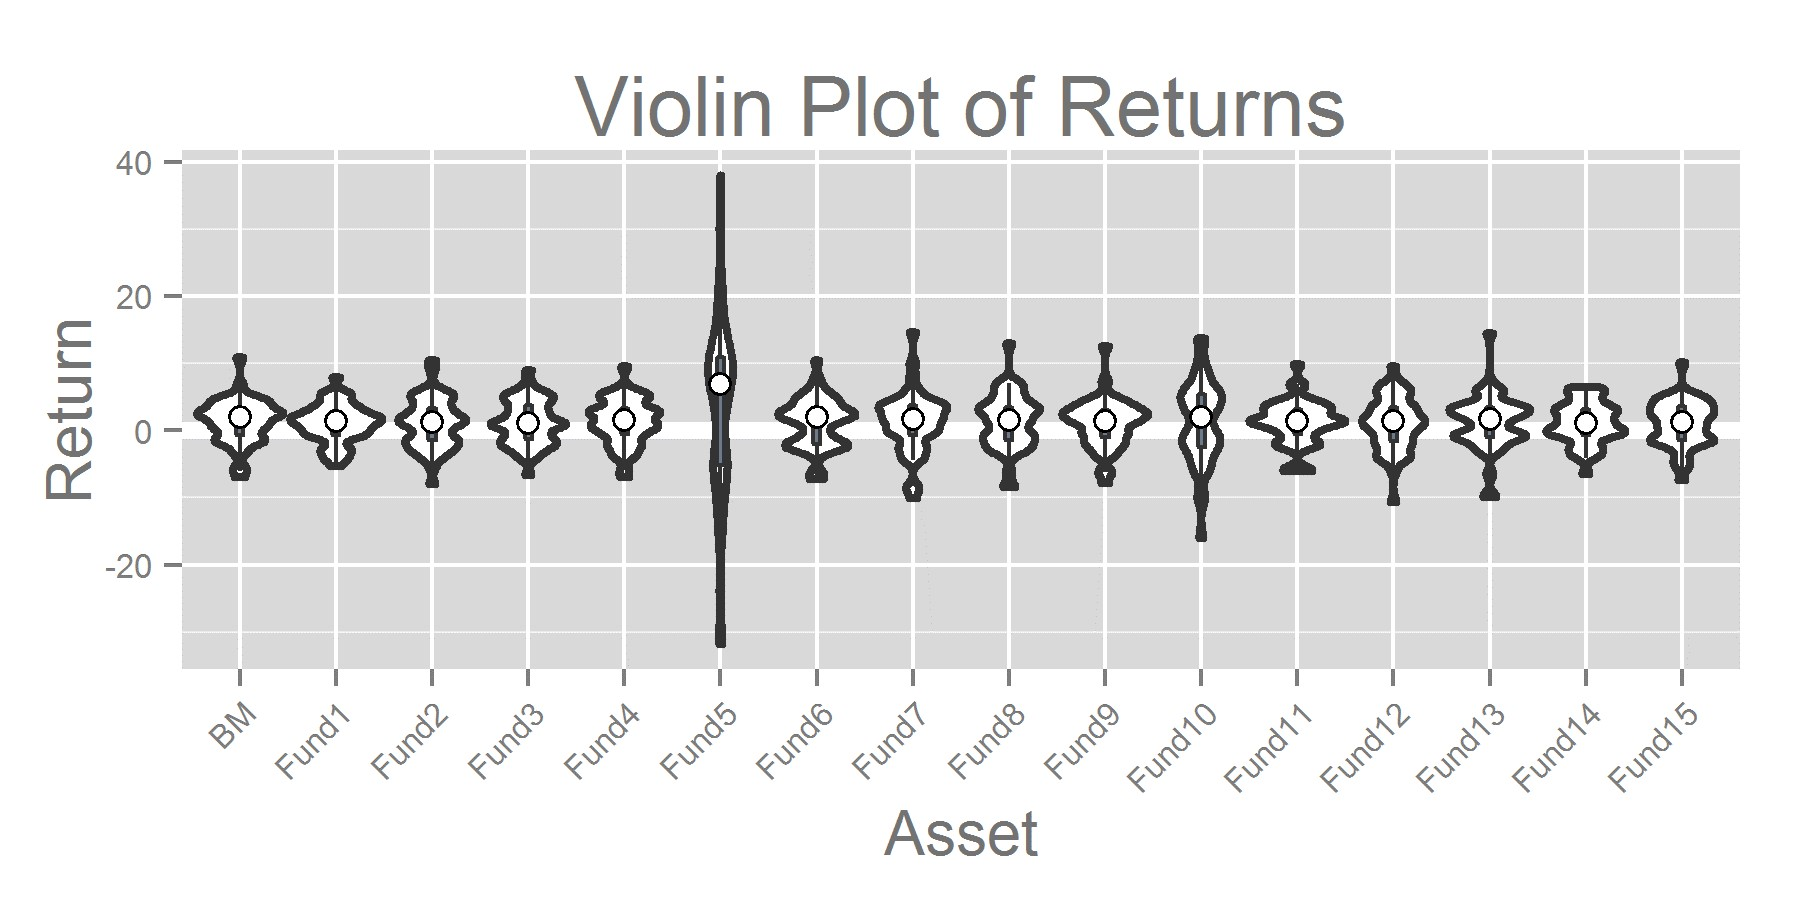 Violin Plot of Returns